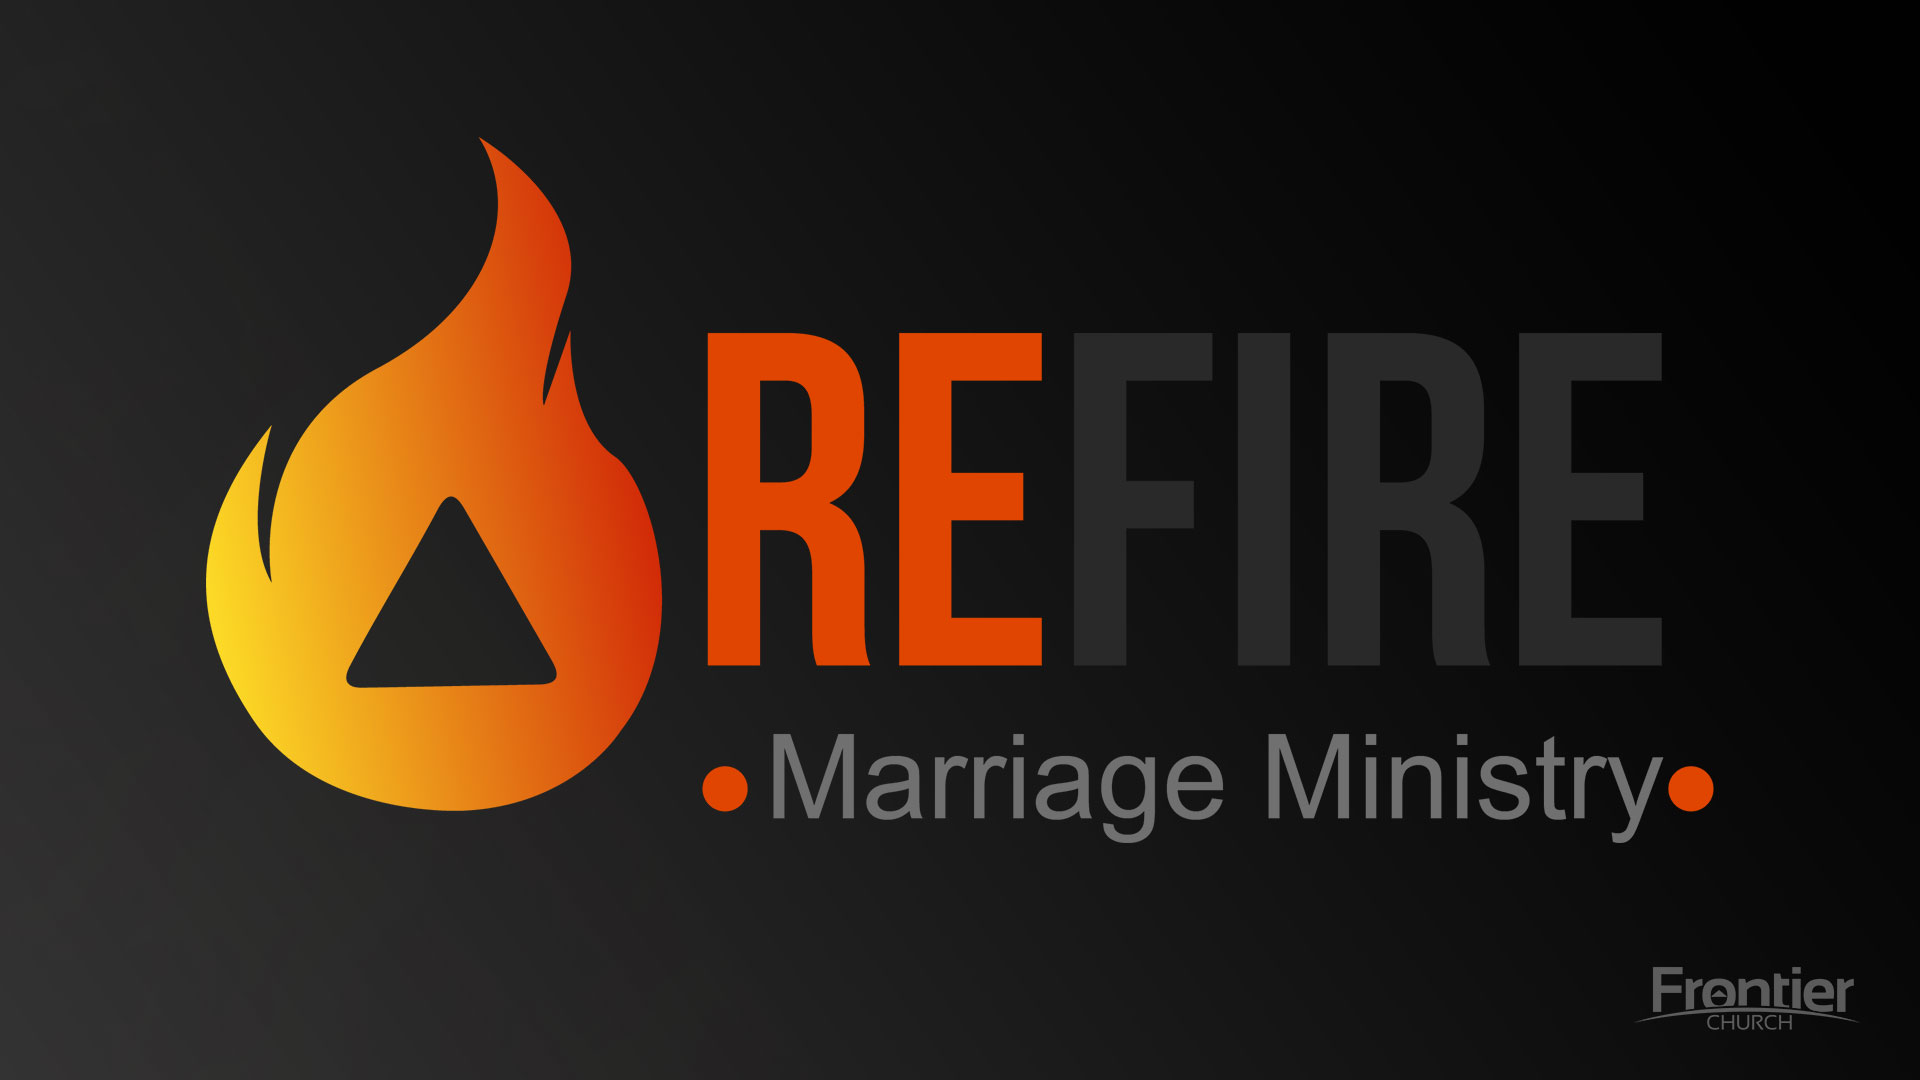 Refire Marriage Ministry